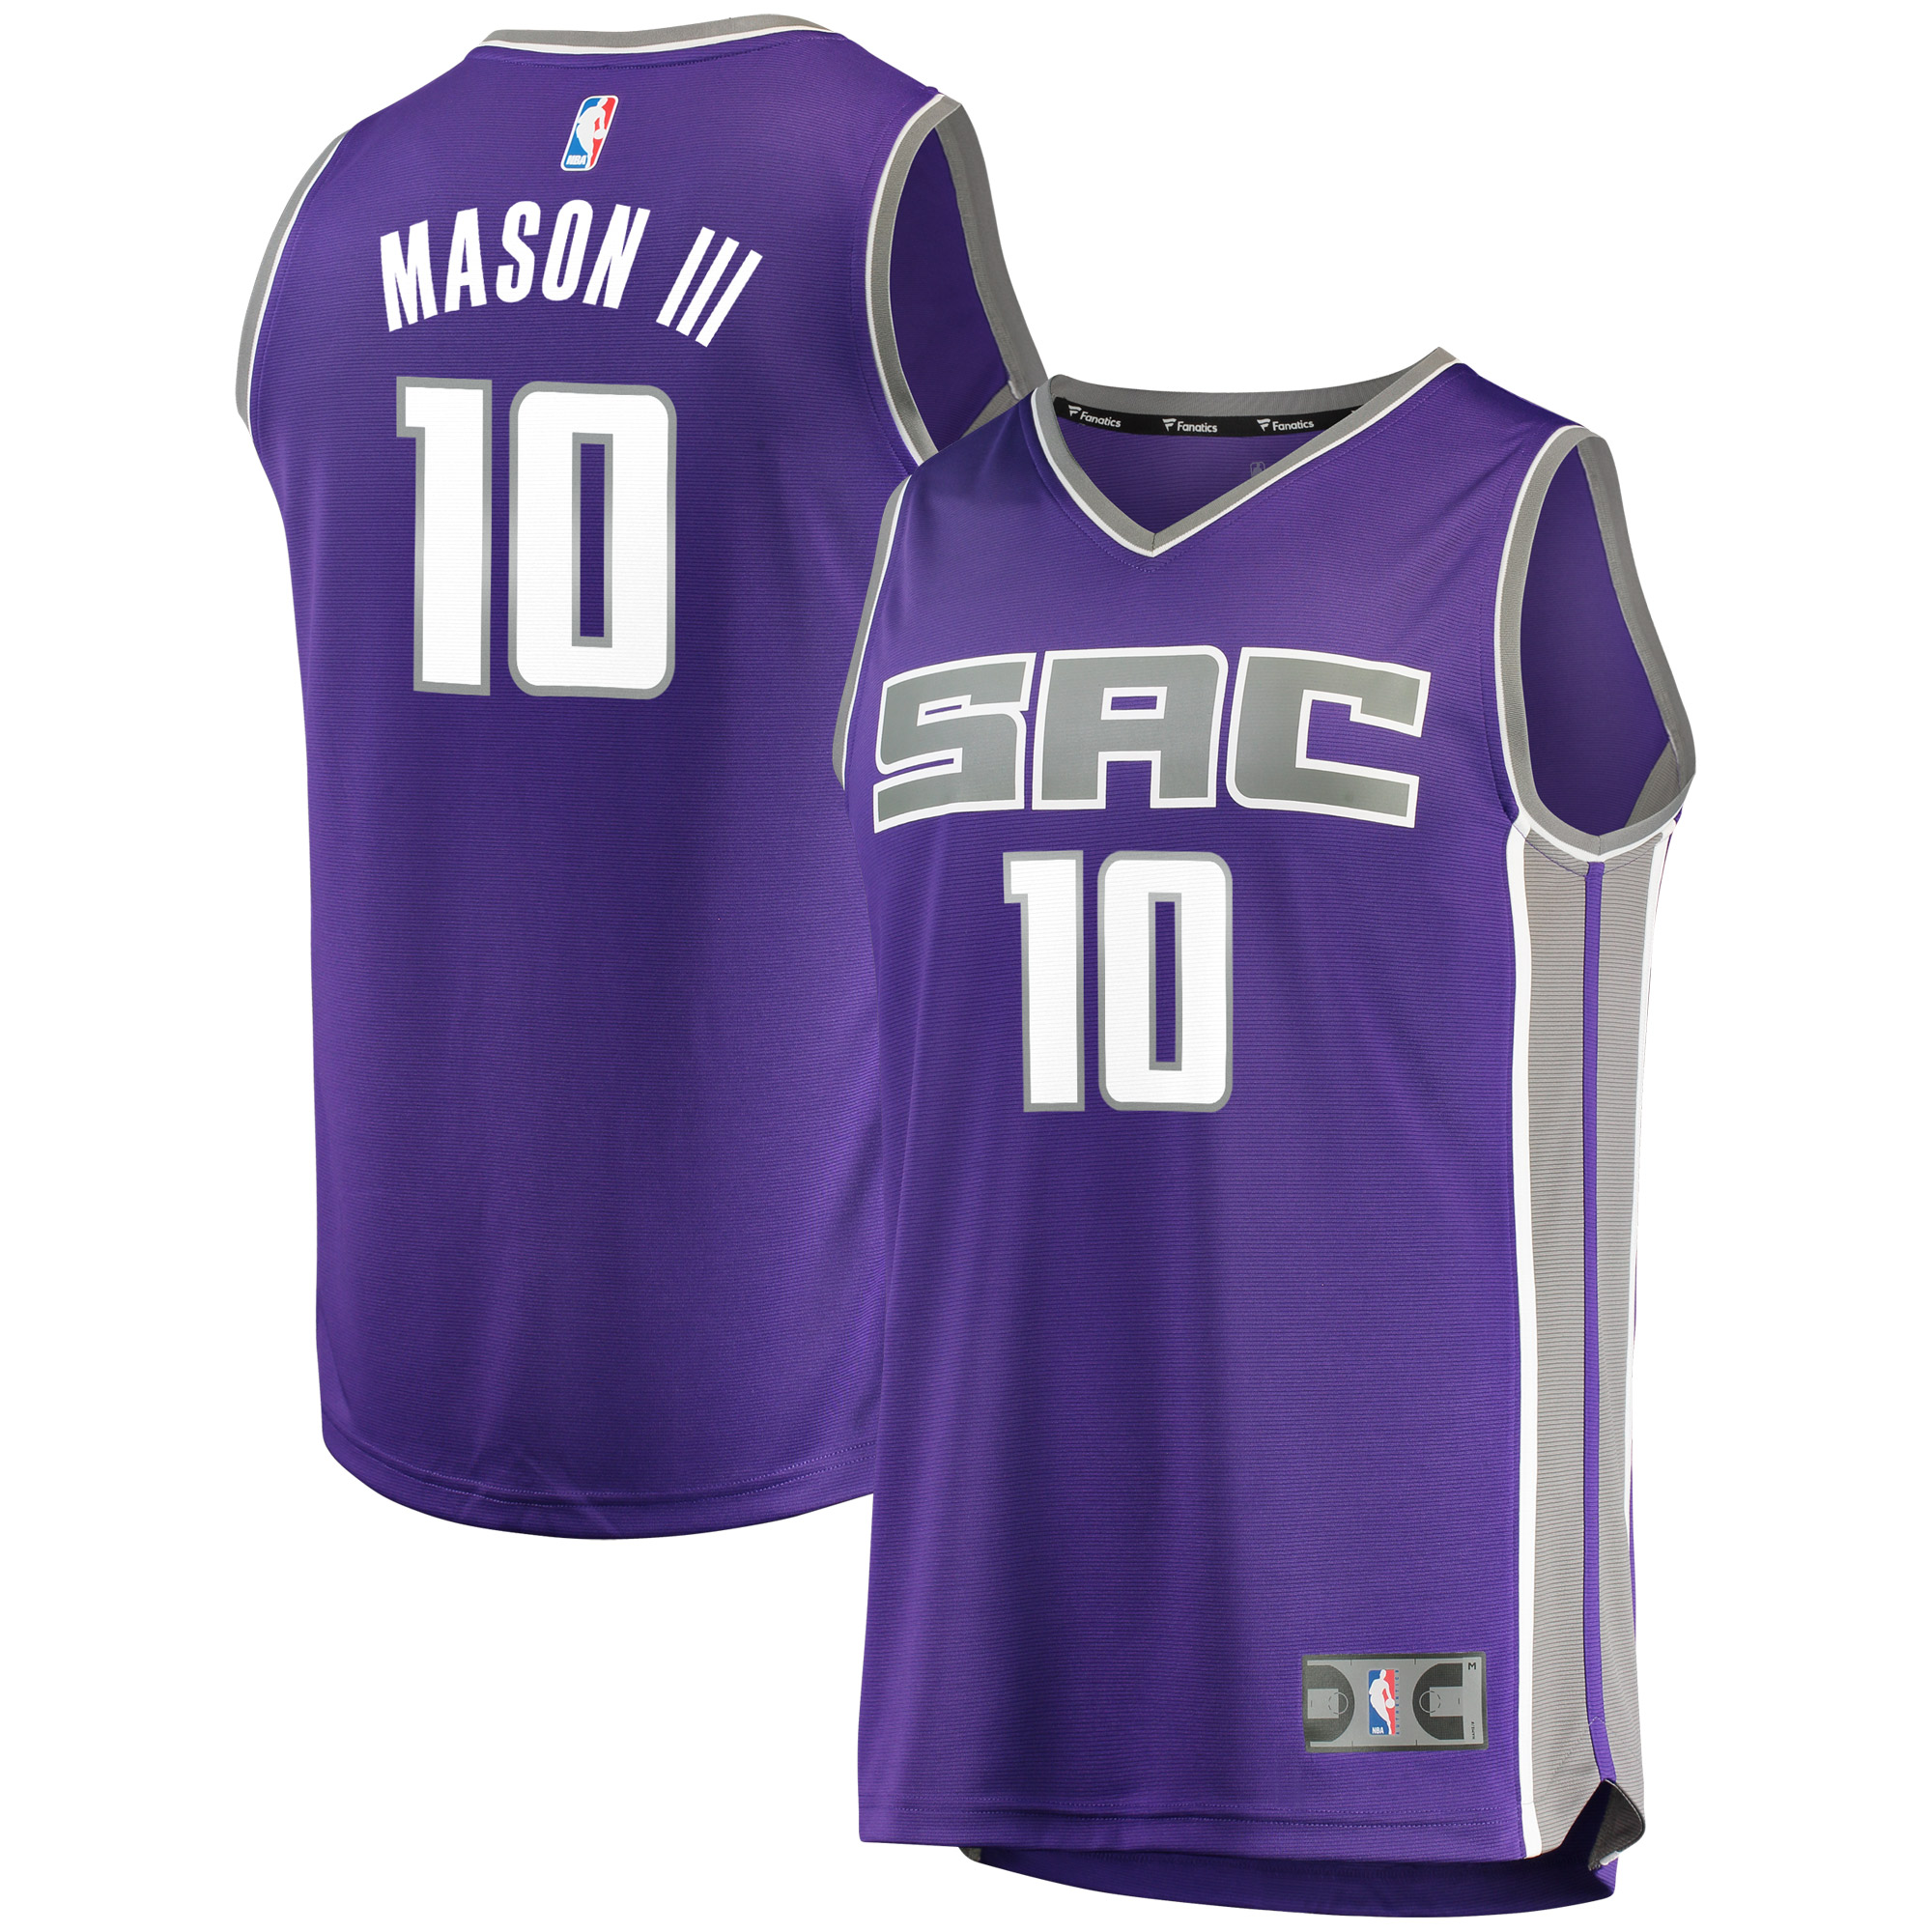 Frank Mason III Sacramento Kings Fanatics Branded Fast Break Road Replica Player Jersey - Purple